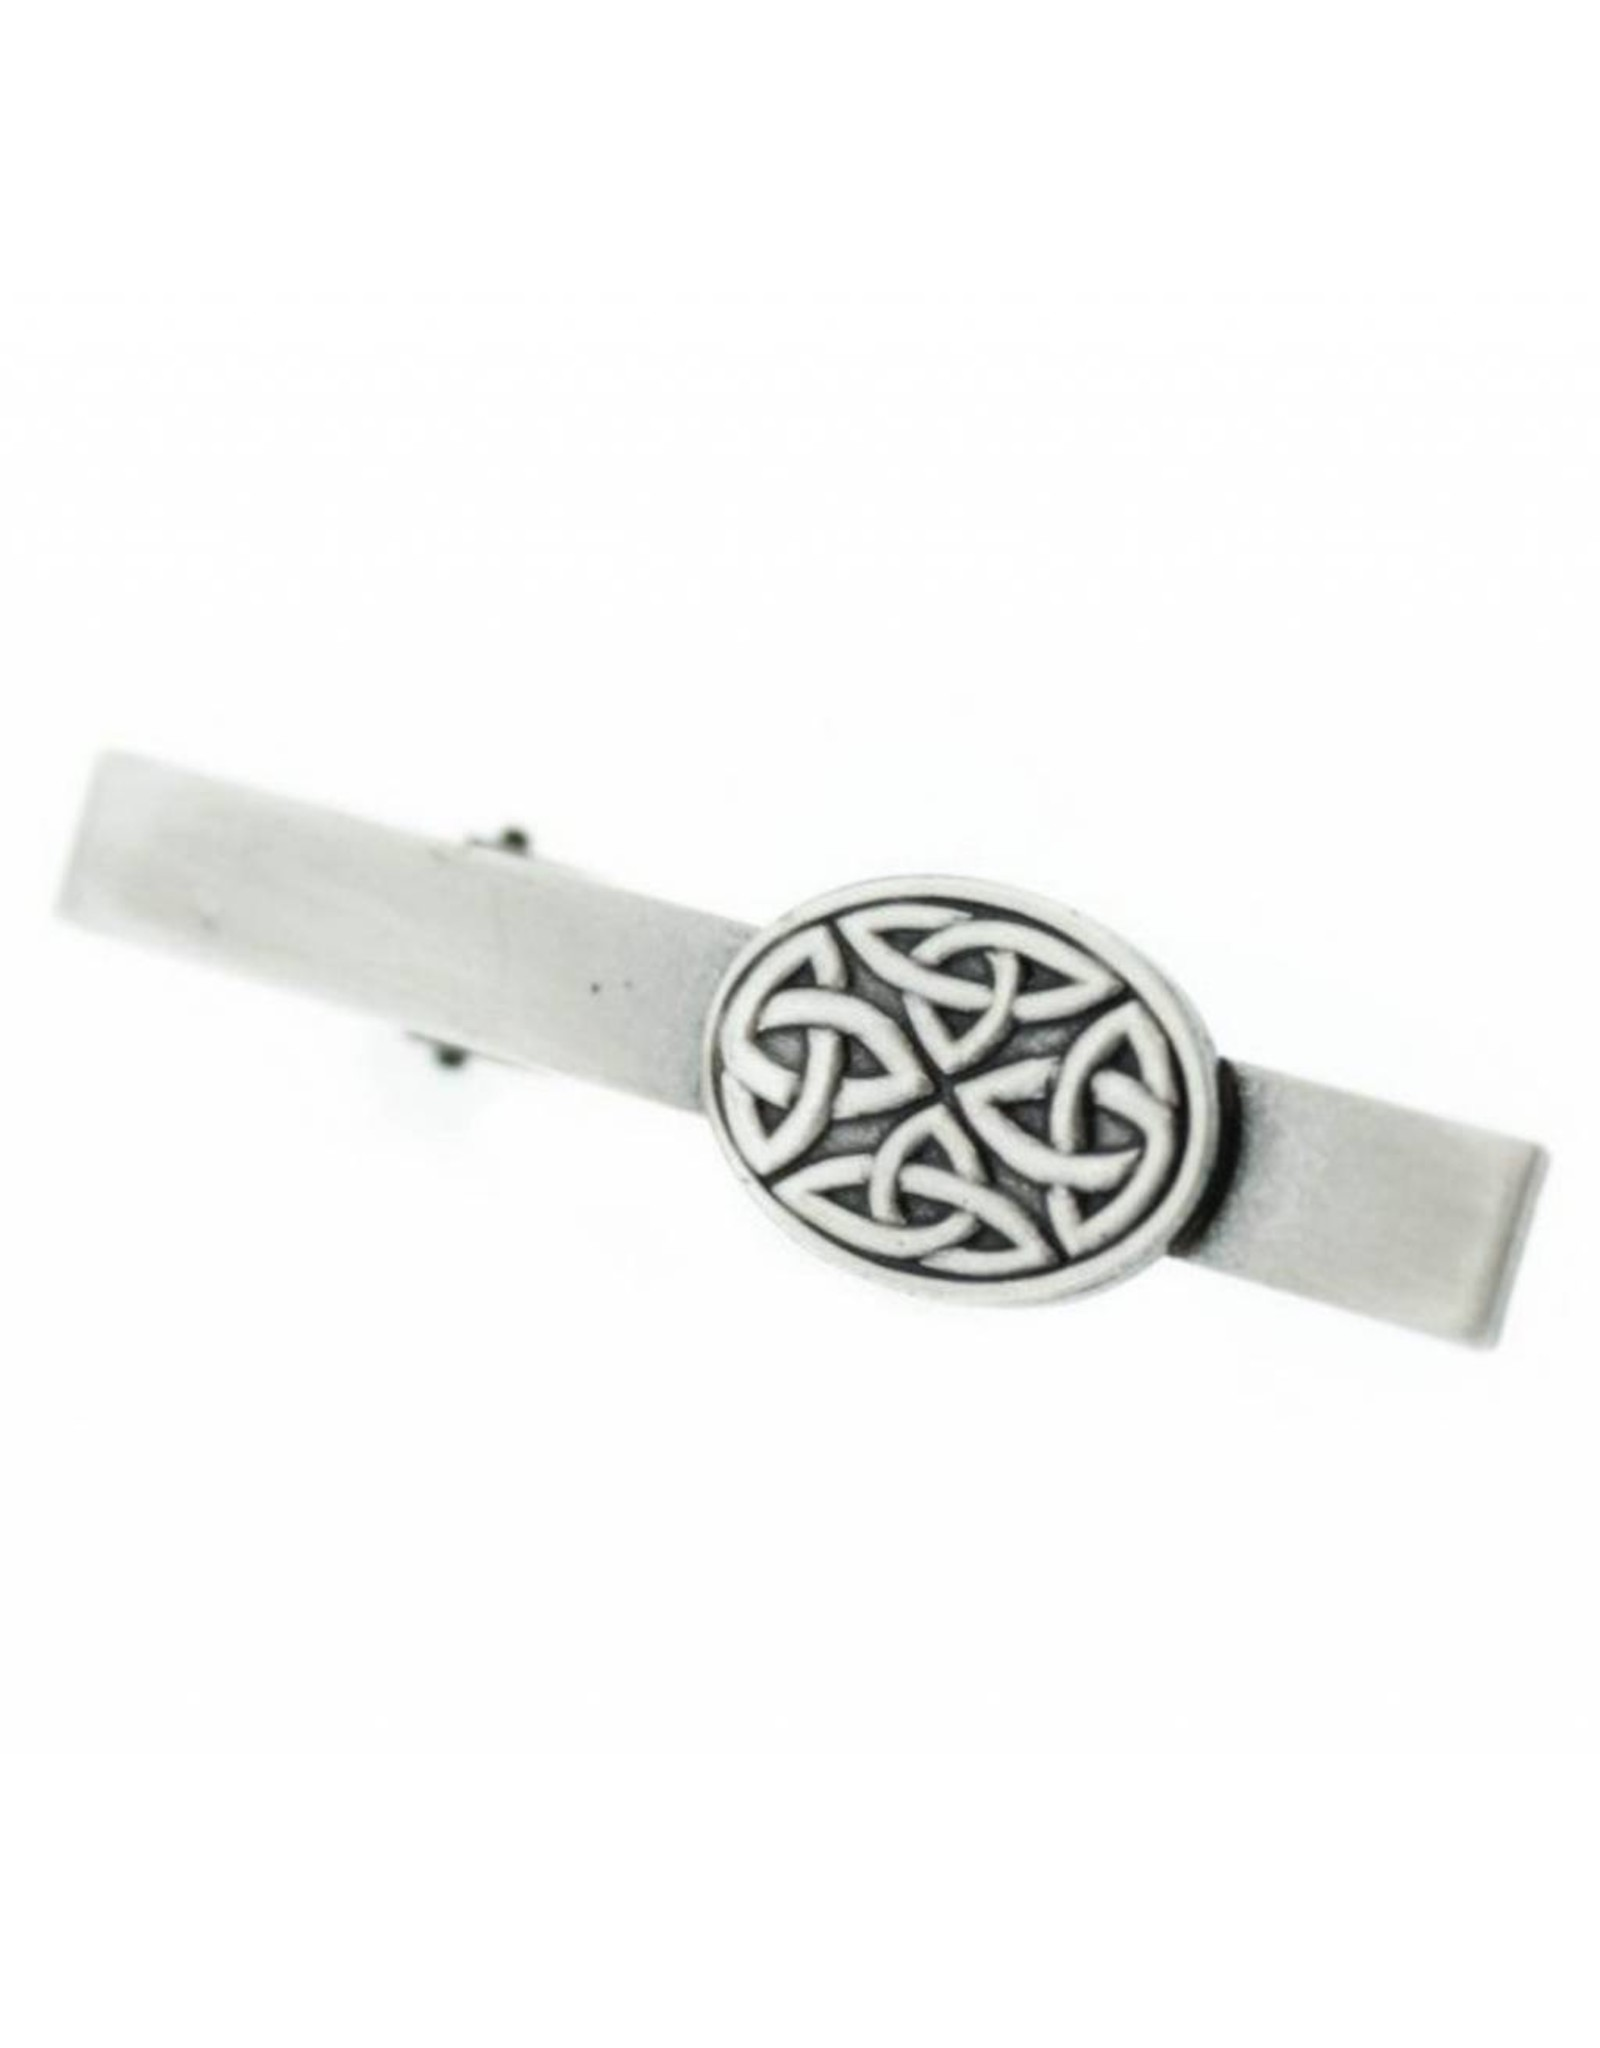 Hamilton & Young Celtic Oval Pewter Tiebar